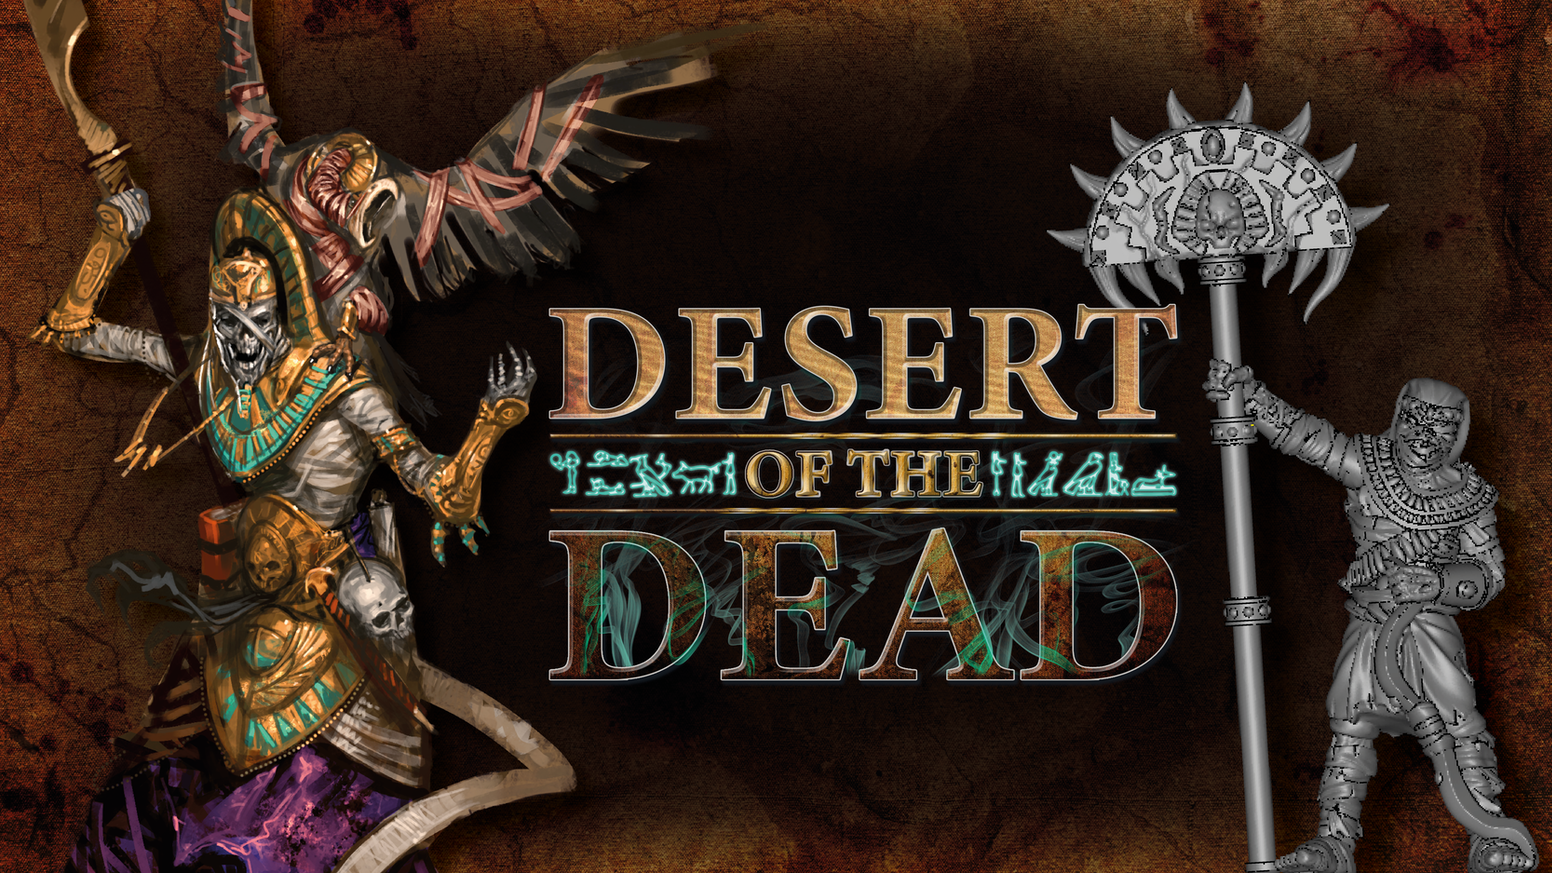 Mummies, elves, halflings and other fantasy miniatures from an undead desert.